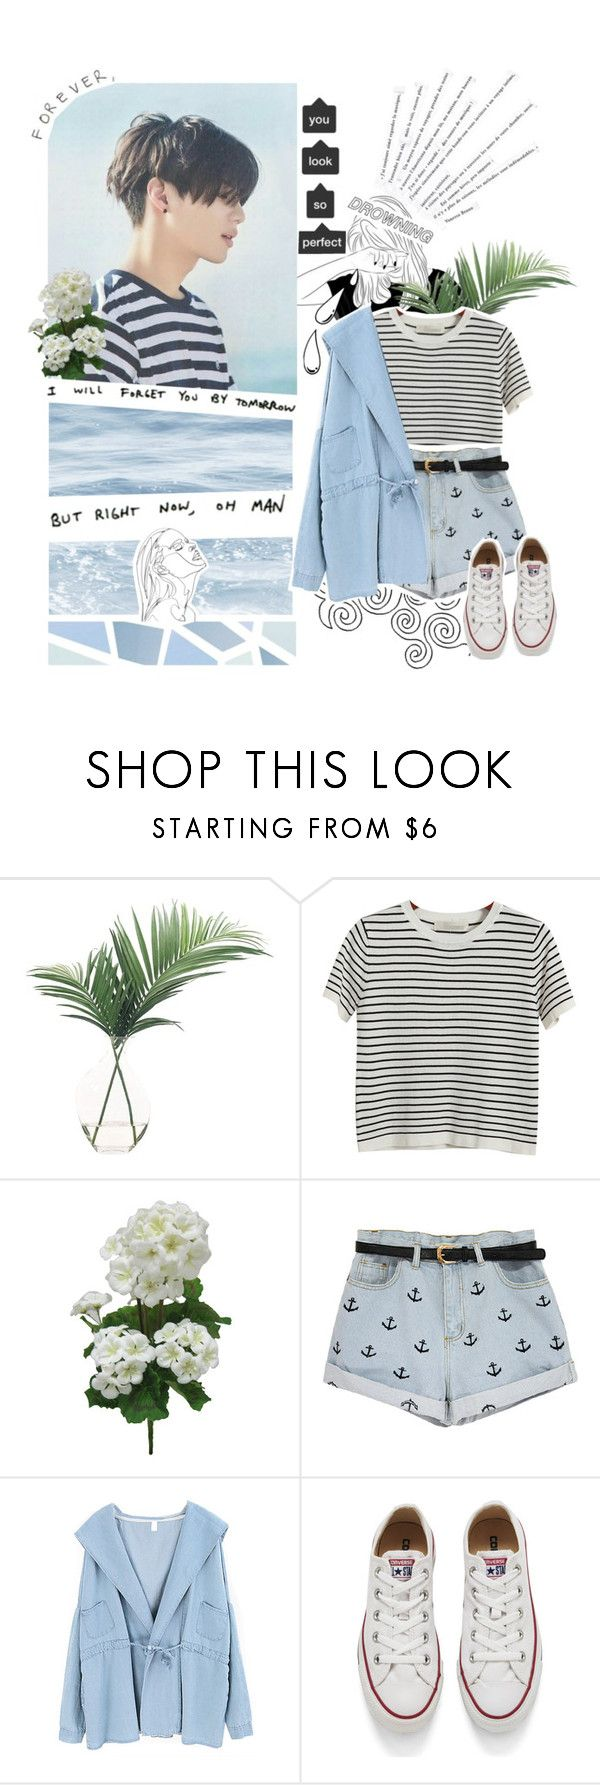 """""""My eyes were looking for you, so I found you"""" by blue-neighbourhxxd ❤ liked on Polyvore featuring NDI, Chicnova Fashion, Katie, Converse, Belle Fleur, Old Navy, kpop, shinee, taemin and ContestOnTheGo"""